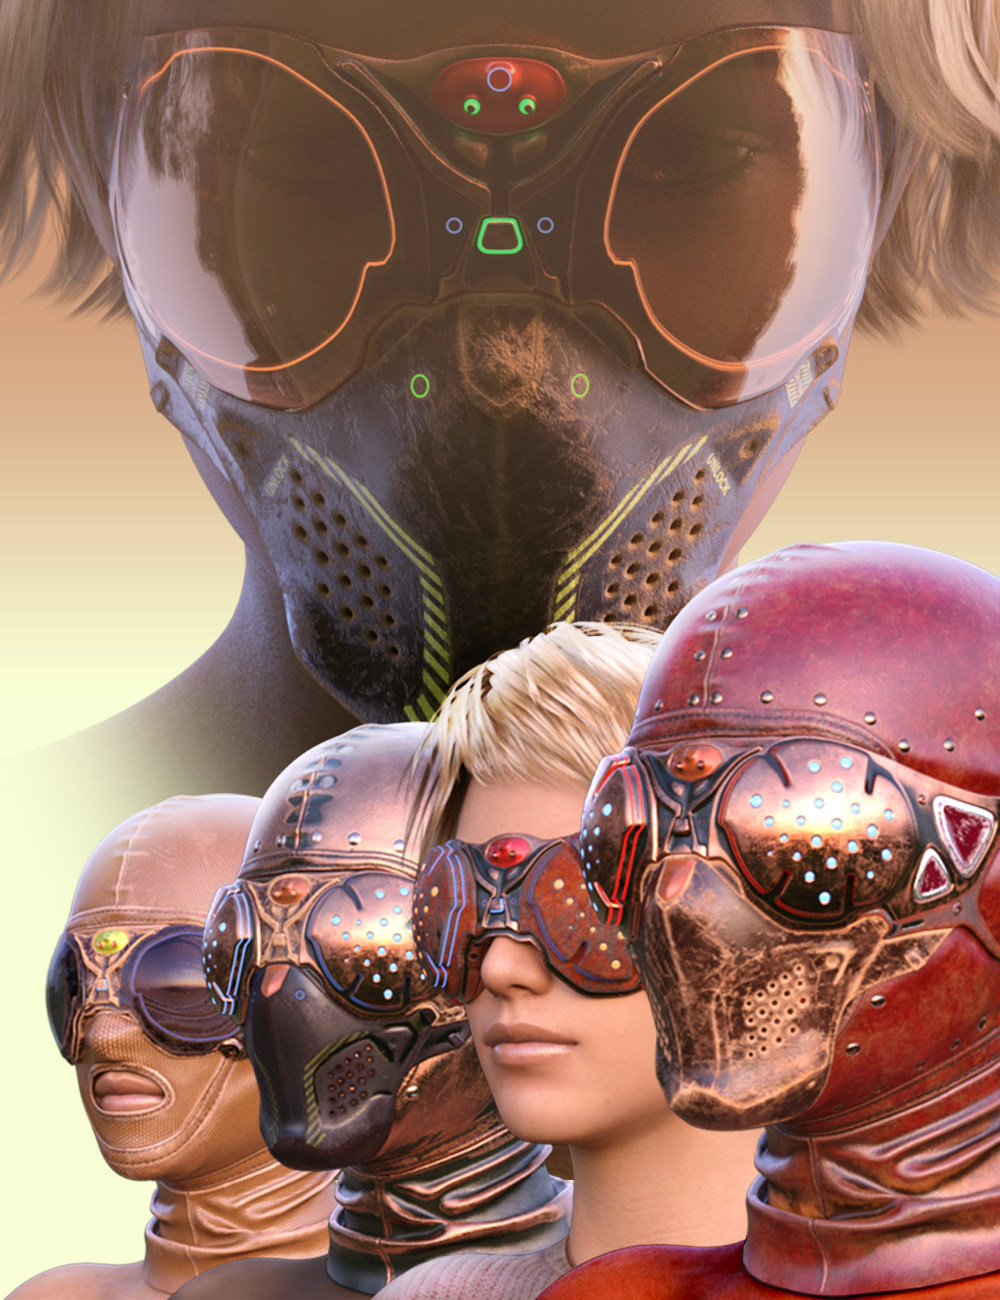 COG SciFi Goggles And Mask Steampunk Texture Pack by: CatOnGlade, 3D Models by Daz 3D